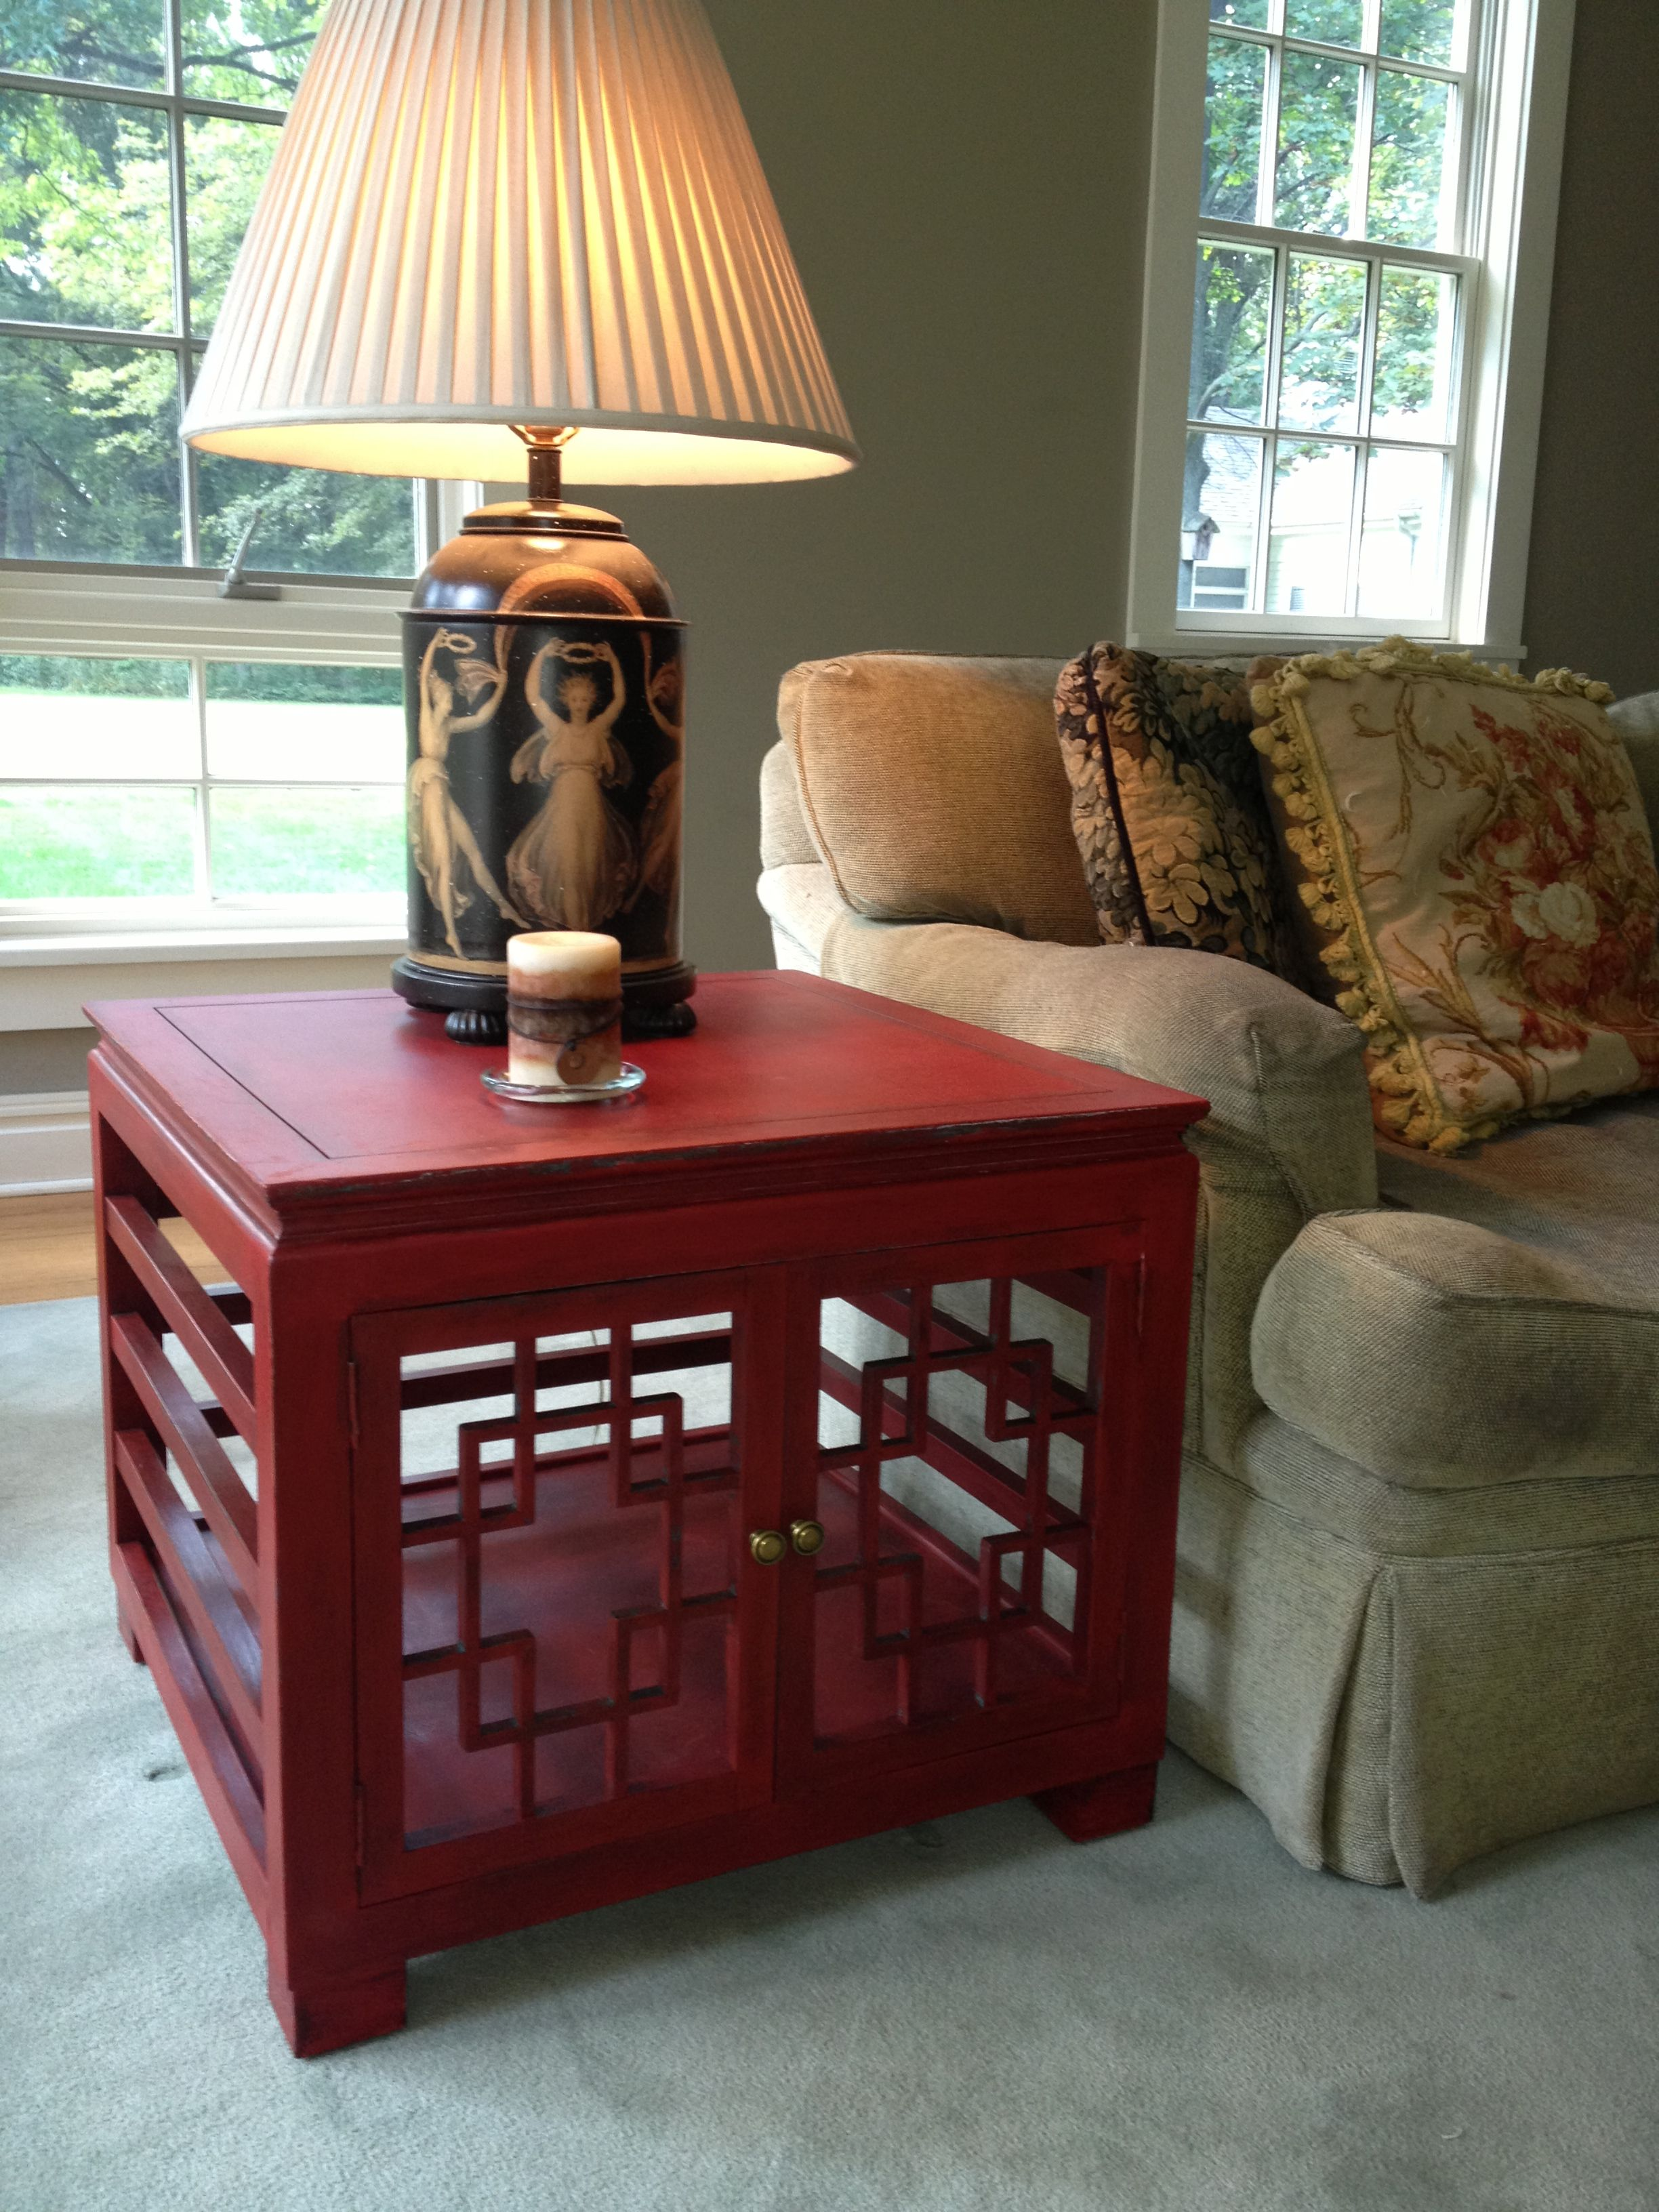 Asianstyle end table painted with Annie Sloan Chalk Paint